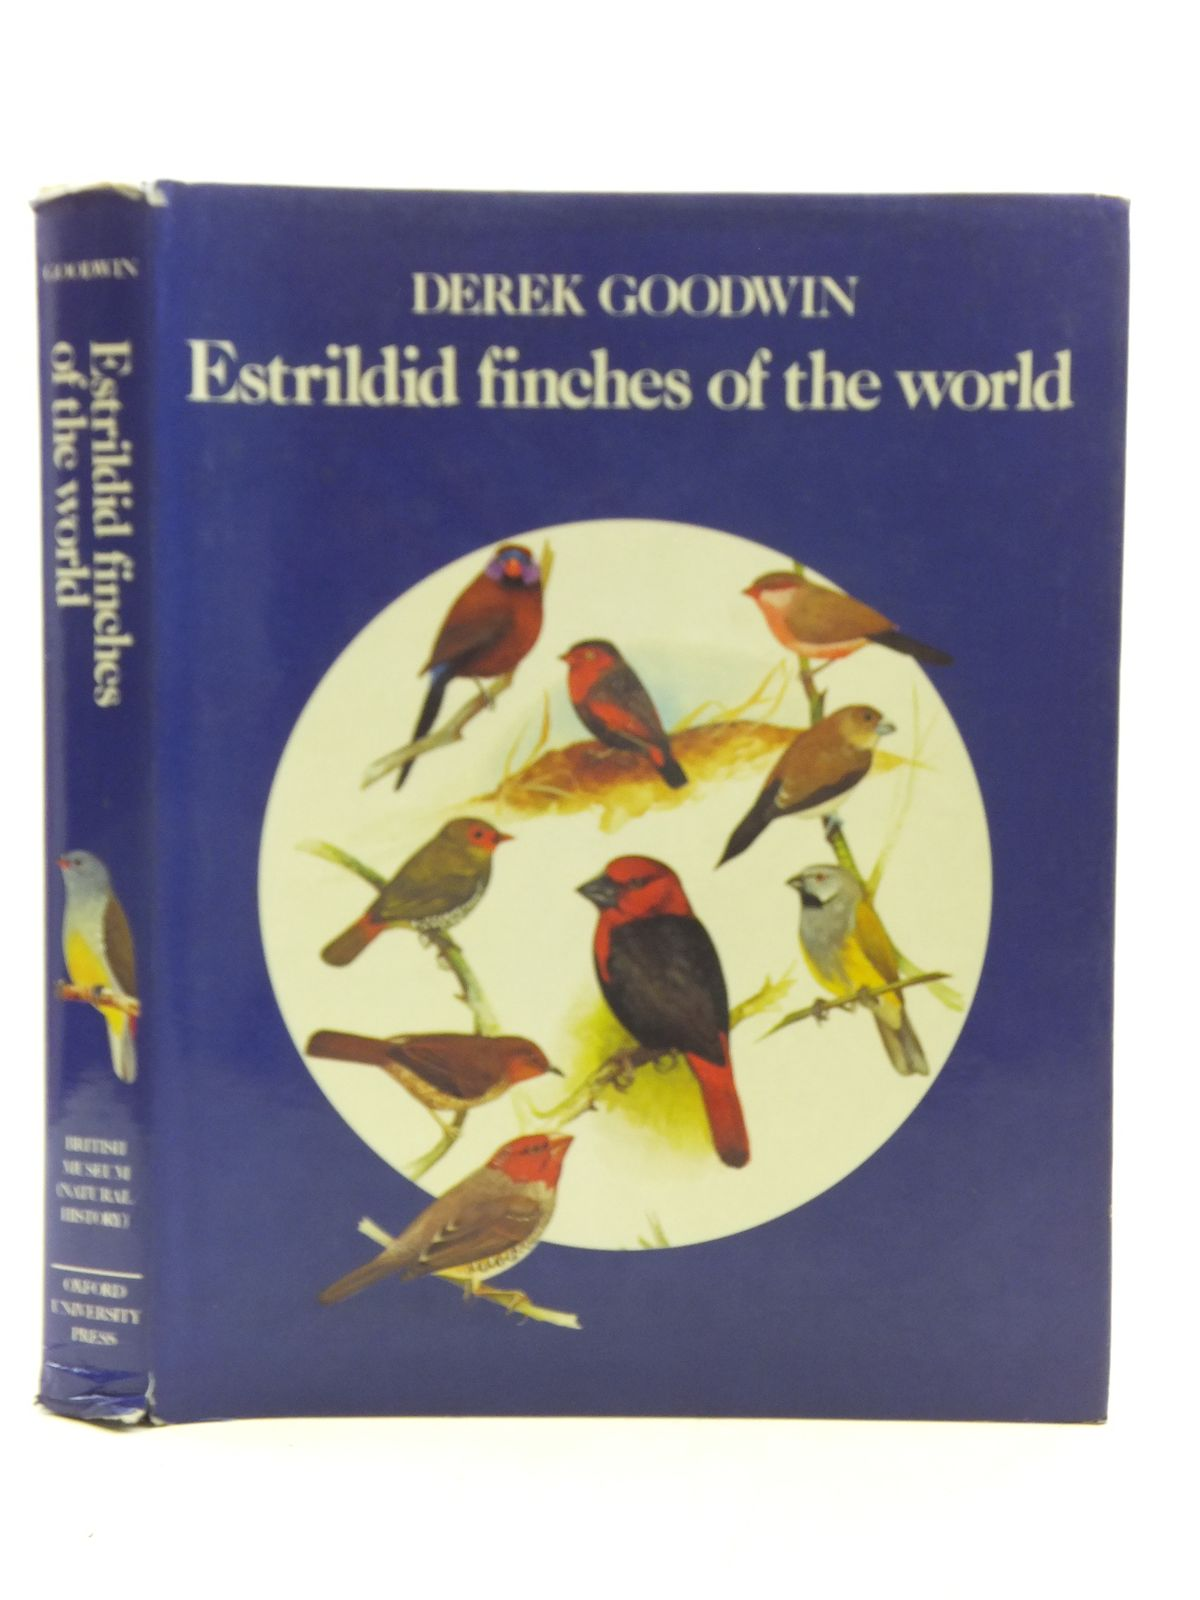 Photo of ESTRILDID FINCHES OF THE WORLD written by Goodwin, Derek illustrated by Woodcock, Martin published by British Museum (Natural History), Oxford University Press (STOCK CODE: 2113832)  for sale by Stella & Rose's Books